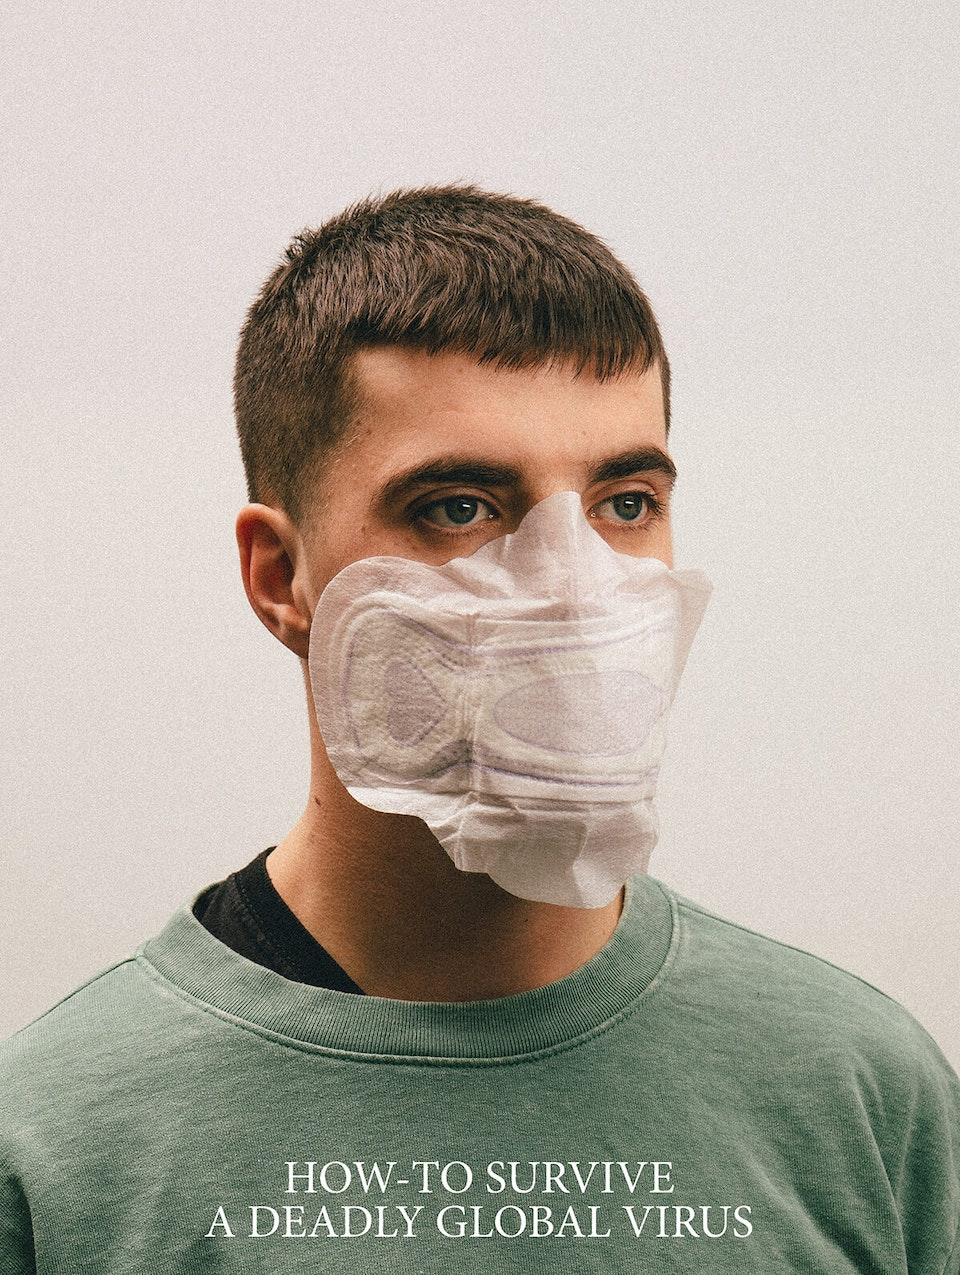 How-To Survive A Deadly Global Virus10